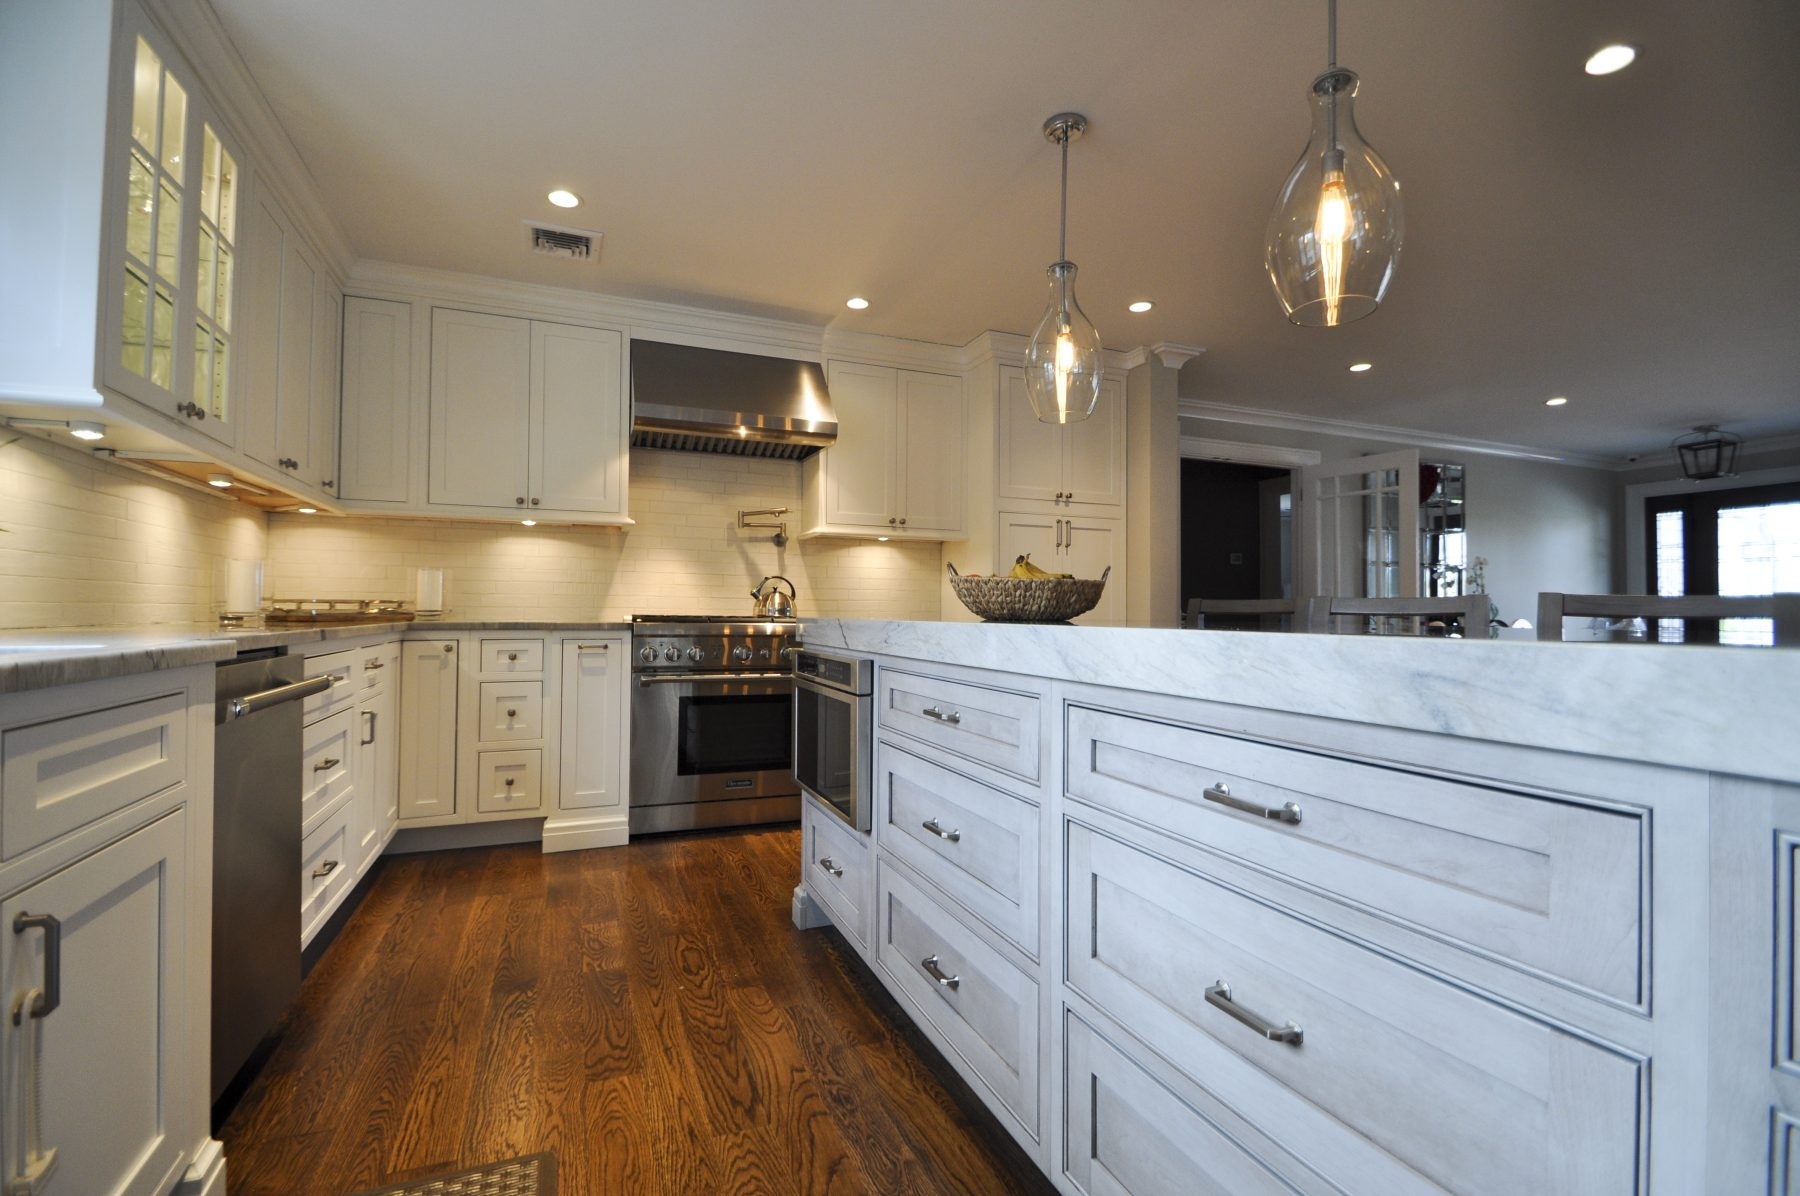 kitchen remodeling remodeling contractors center island our qualified professional kitchen remodeling team can assist you in creating the kitchen of your dreams for more information on our long island based